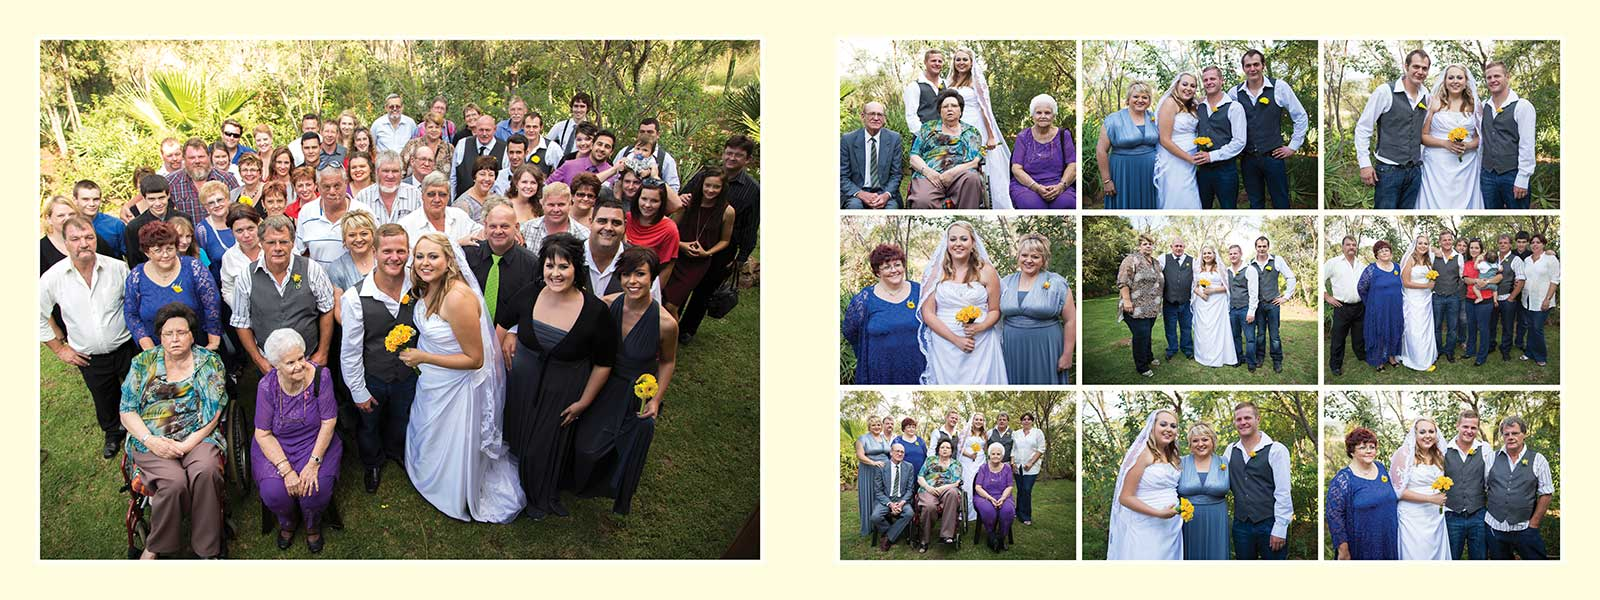 Wedding Guests Roseview Hill